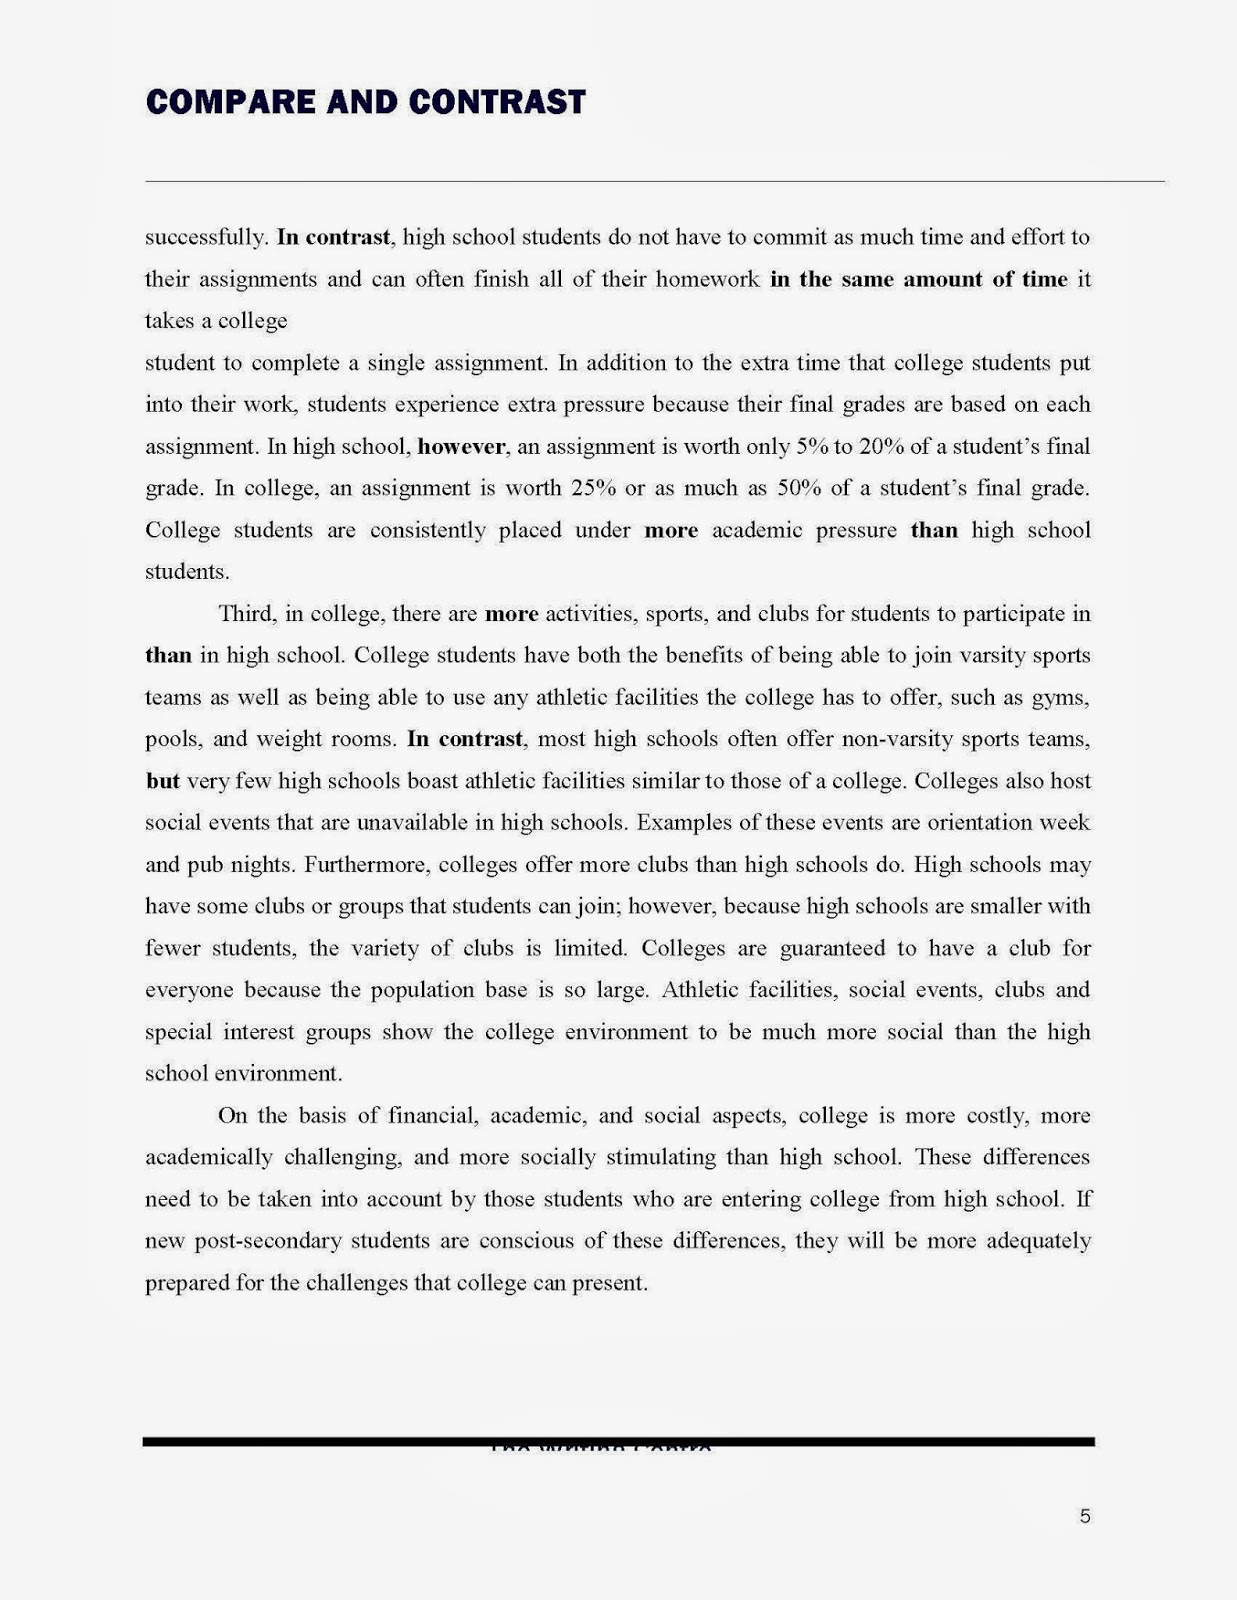 compare and contrast essay high school vs college highschool essay  essay on the giver by lois lowry essay on the book the giver by compare and